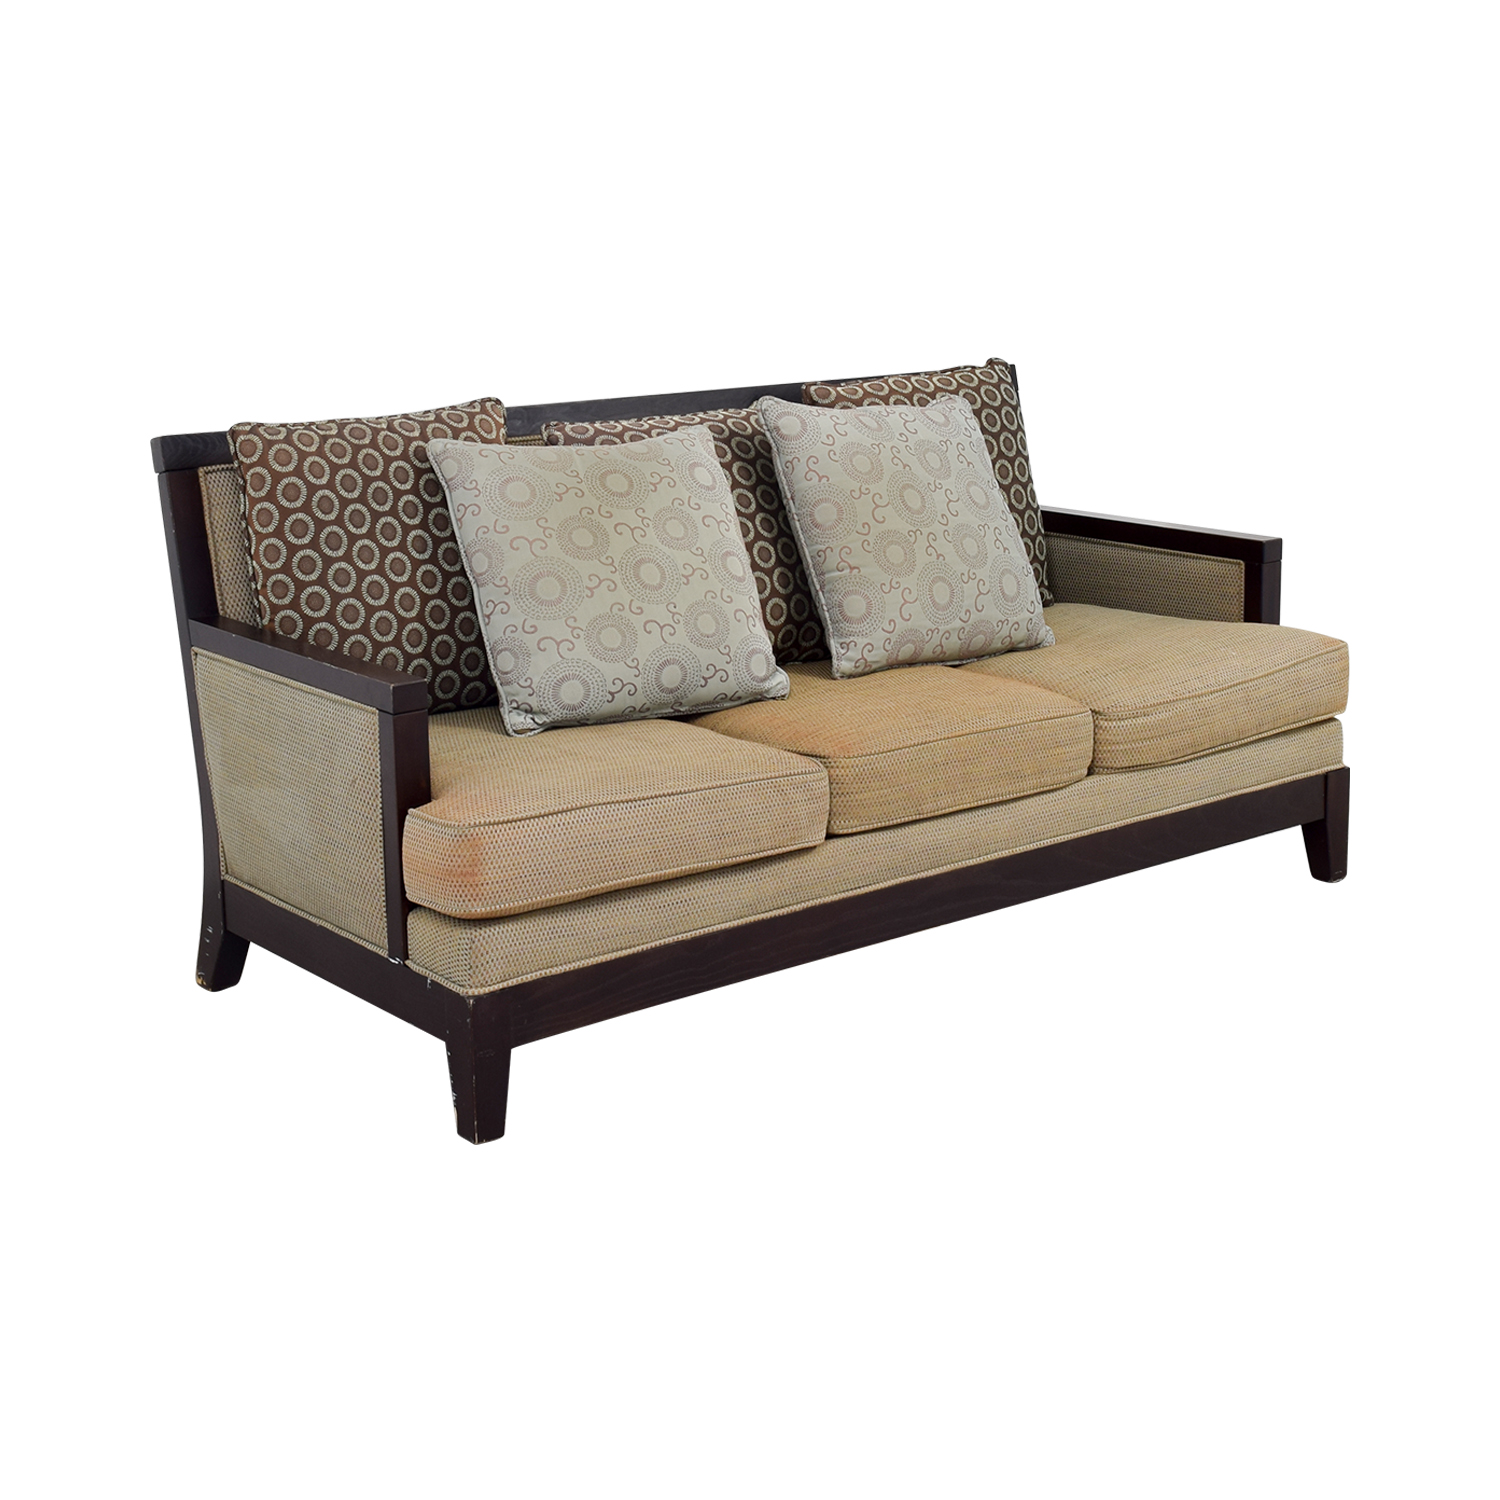 Sofa Set Wood Olx Second Hand Wood Sofa Brokeasshome